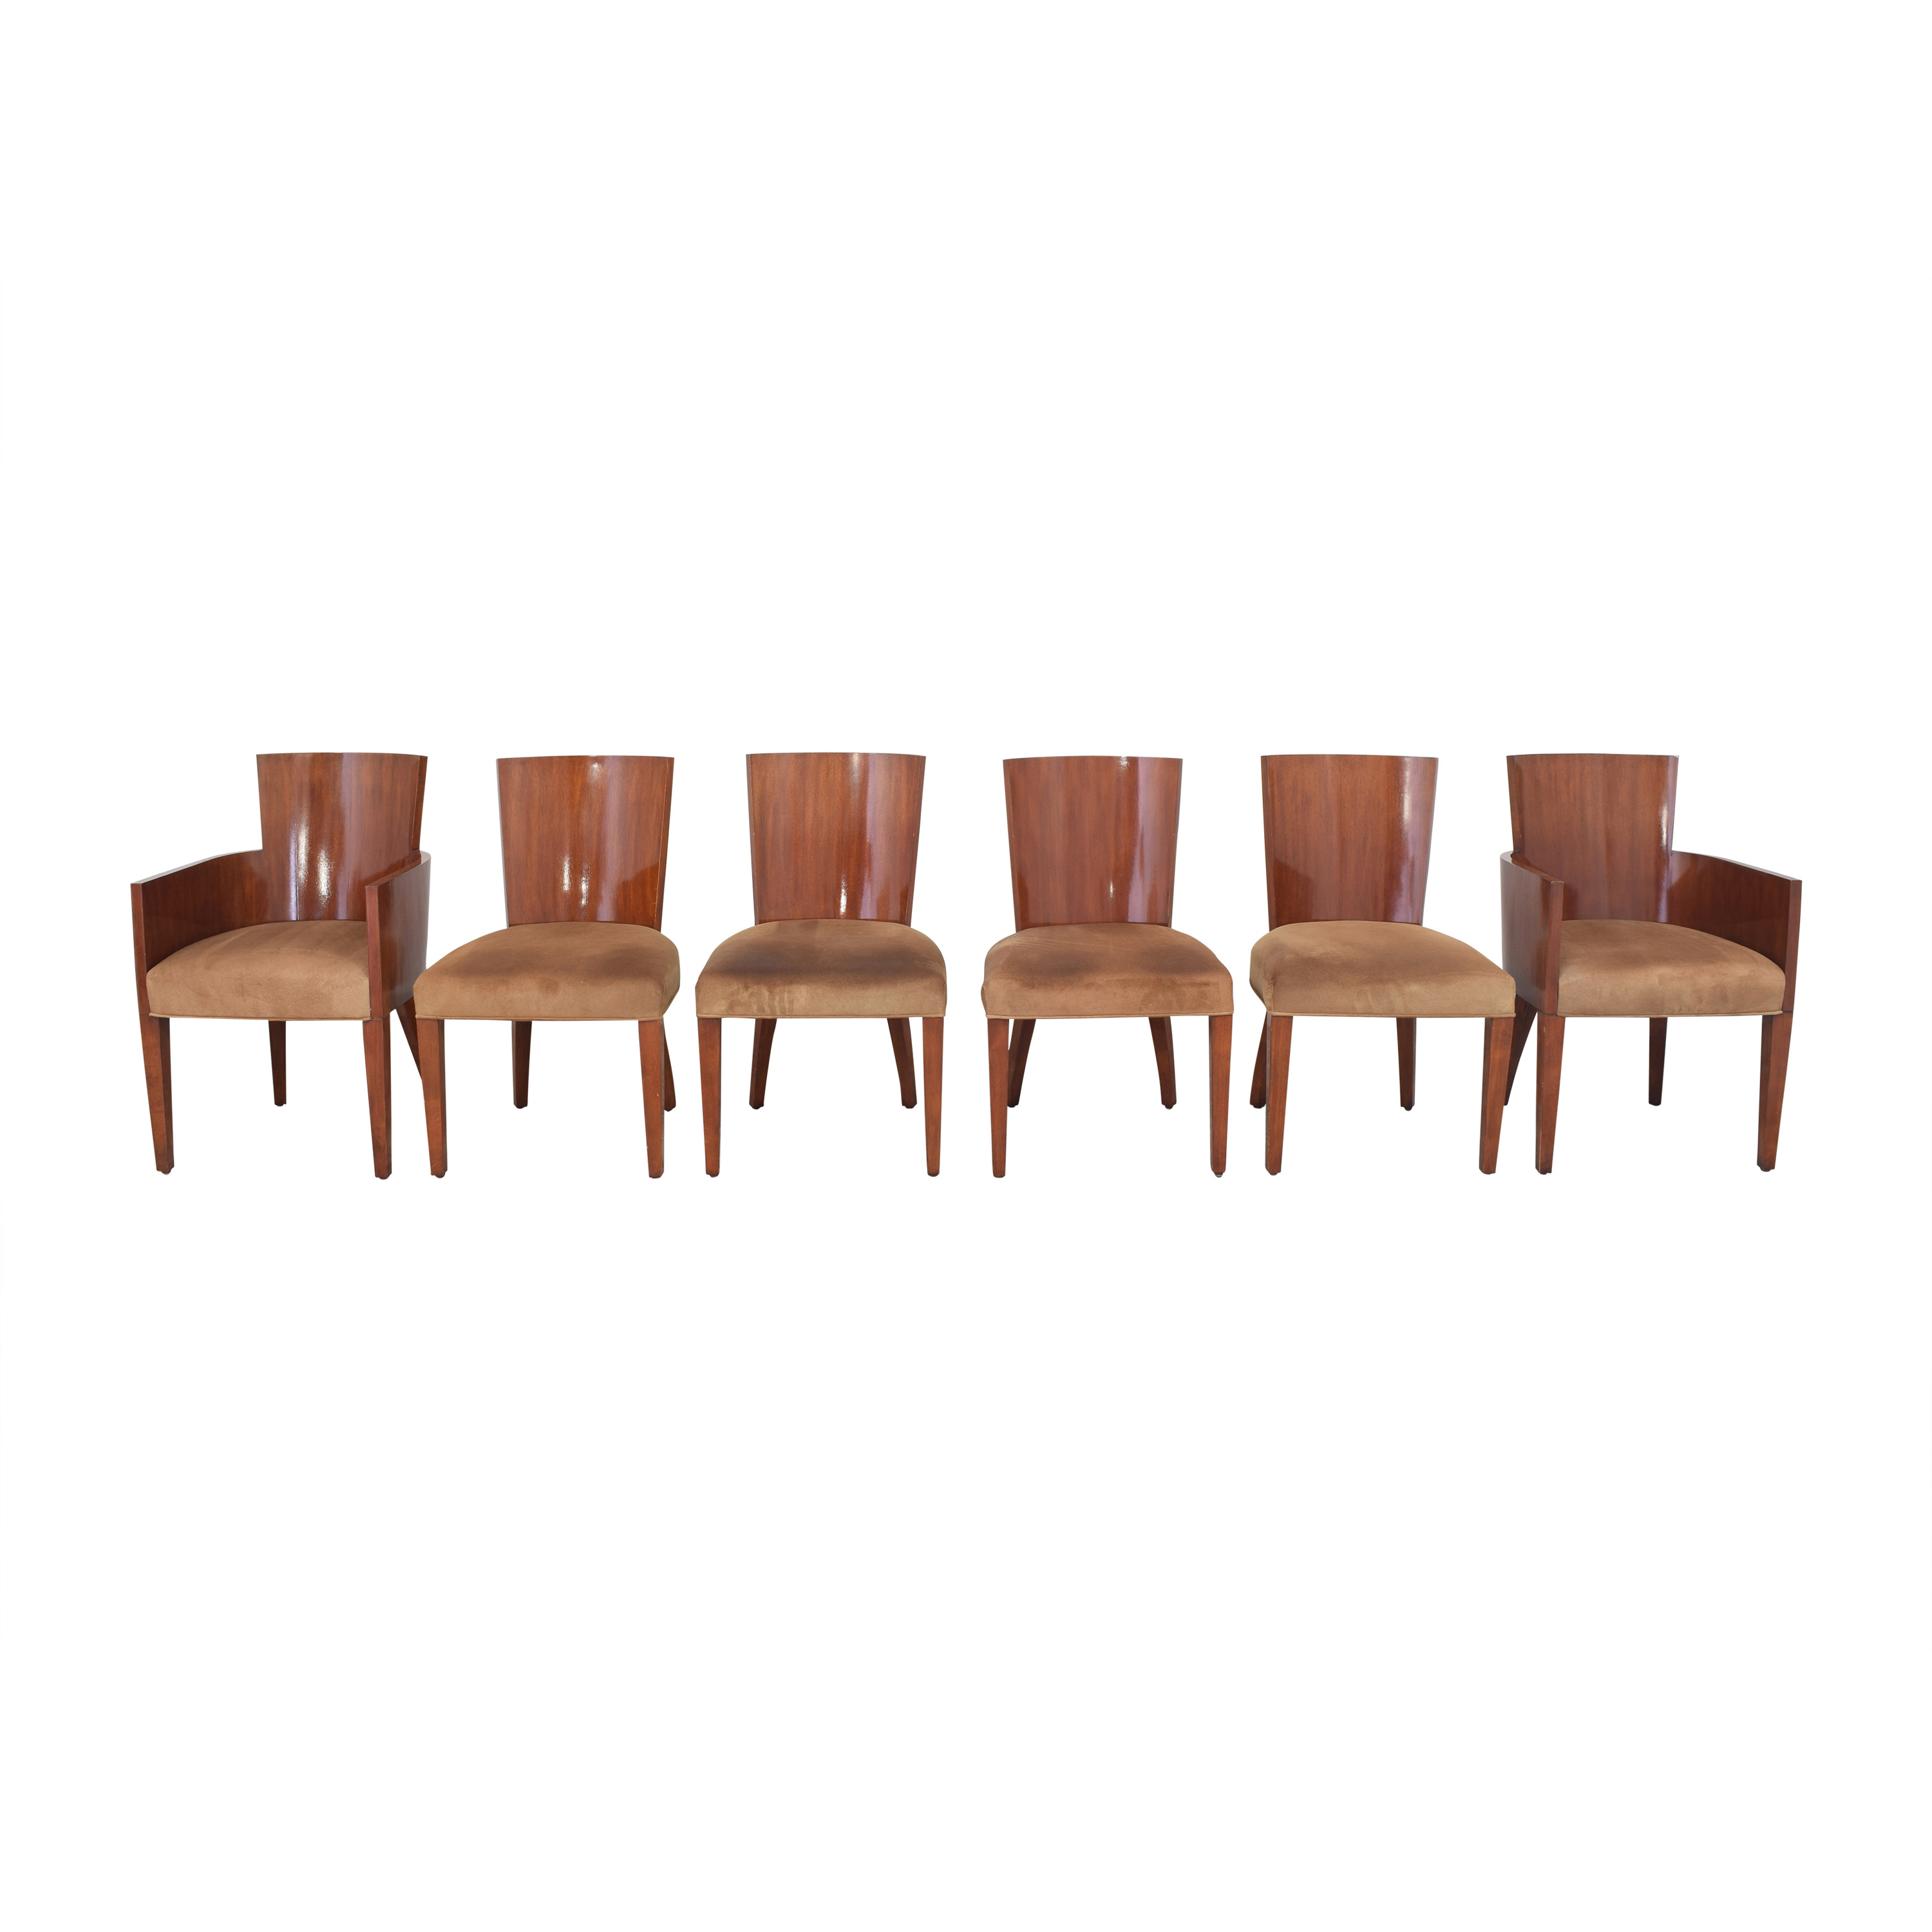 Ralph Lauren Home Ralph Lauren Home Upholstered Dining Chairs on sale